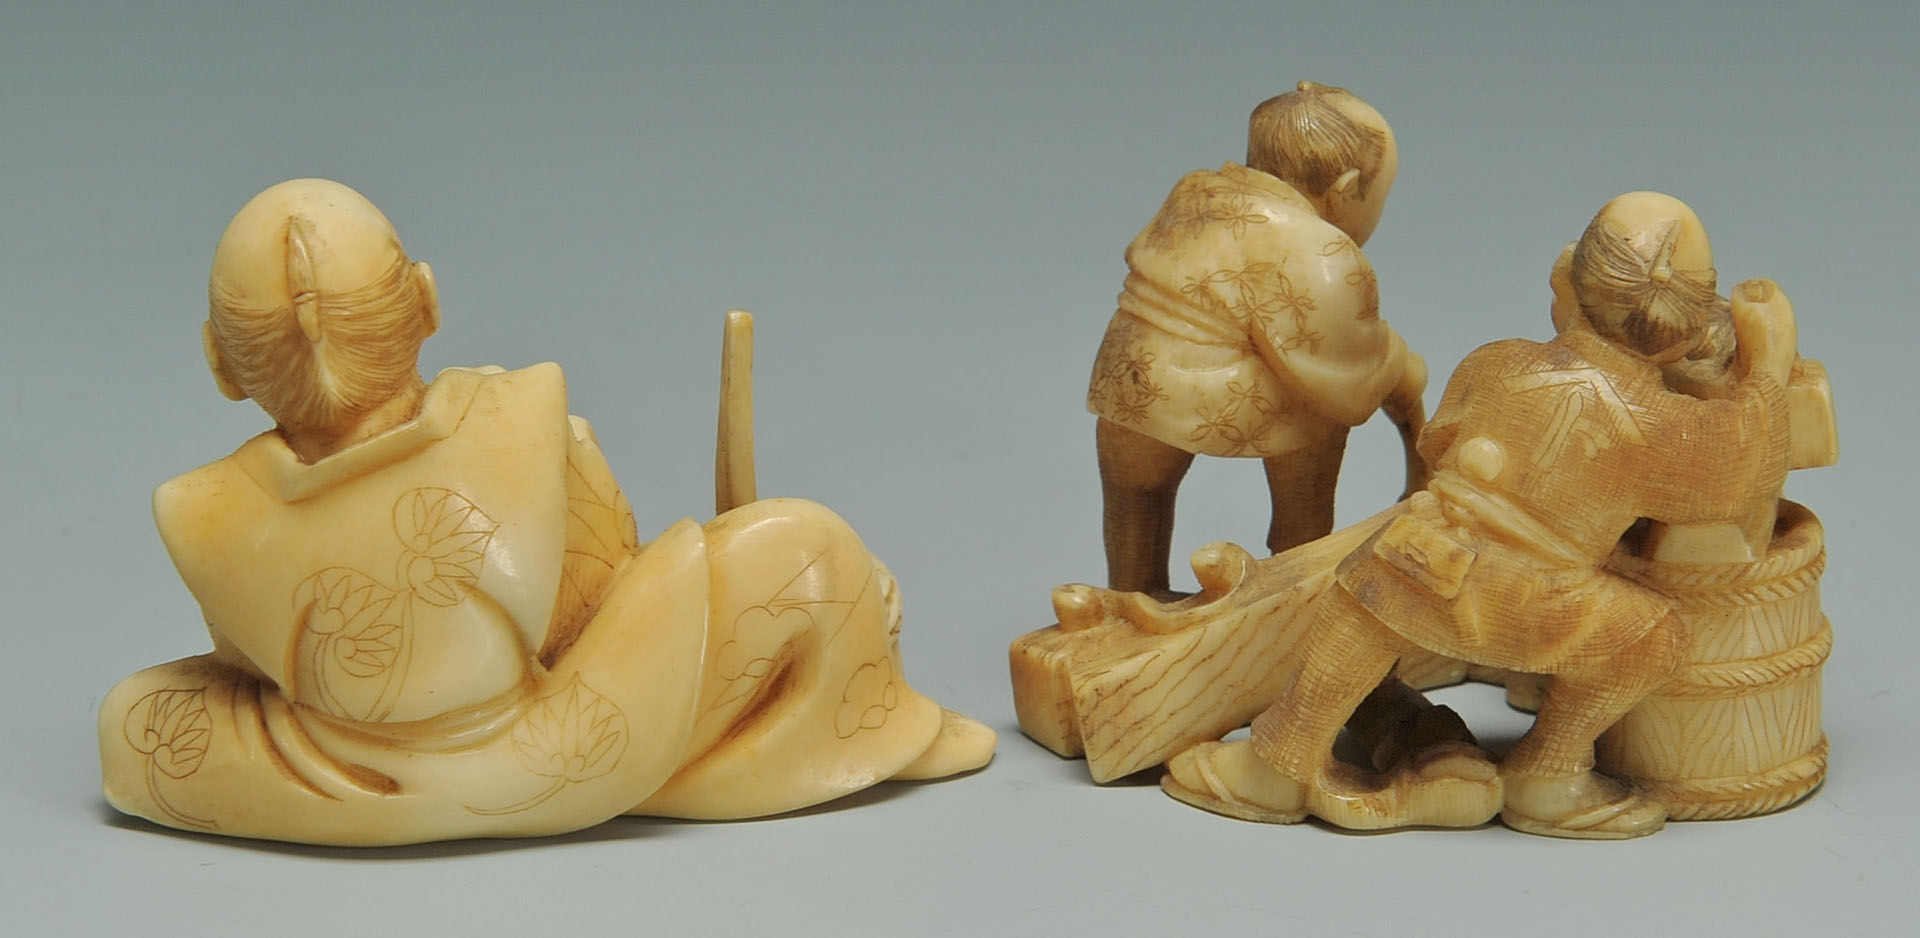 Lot 251: 2 Japanese Ivory Okimono, grist and wood workers